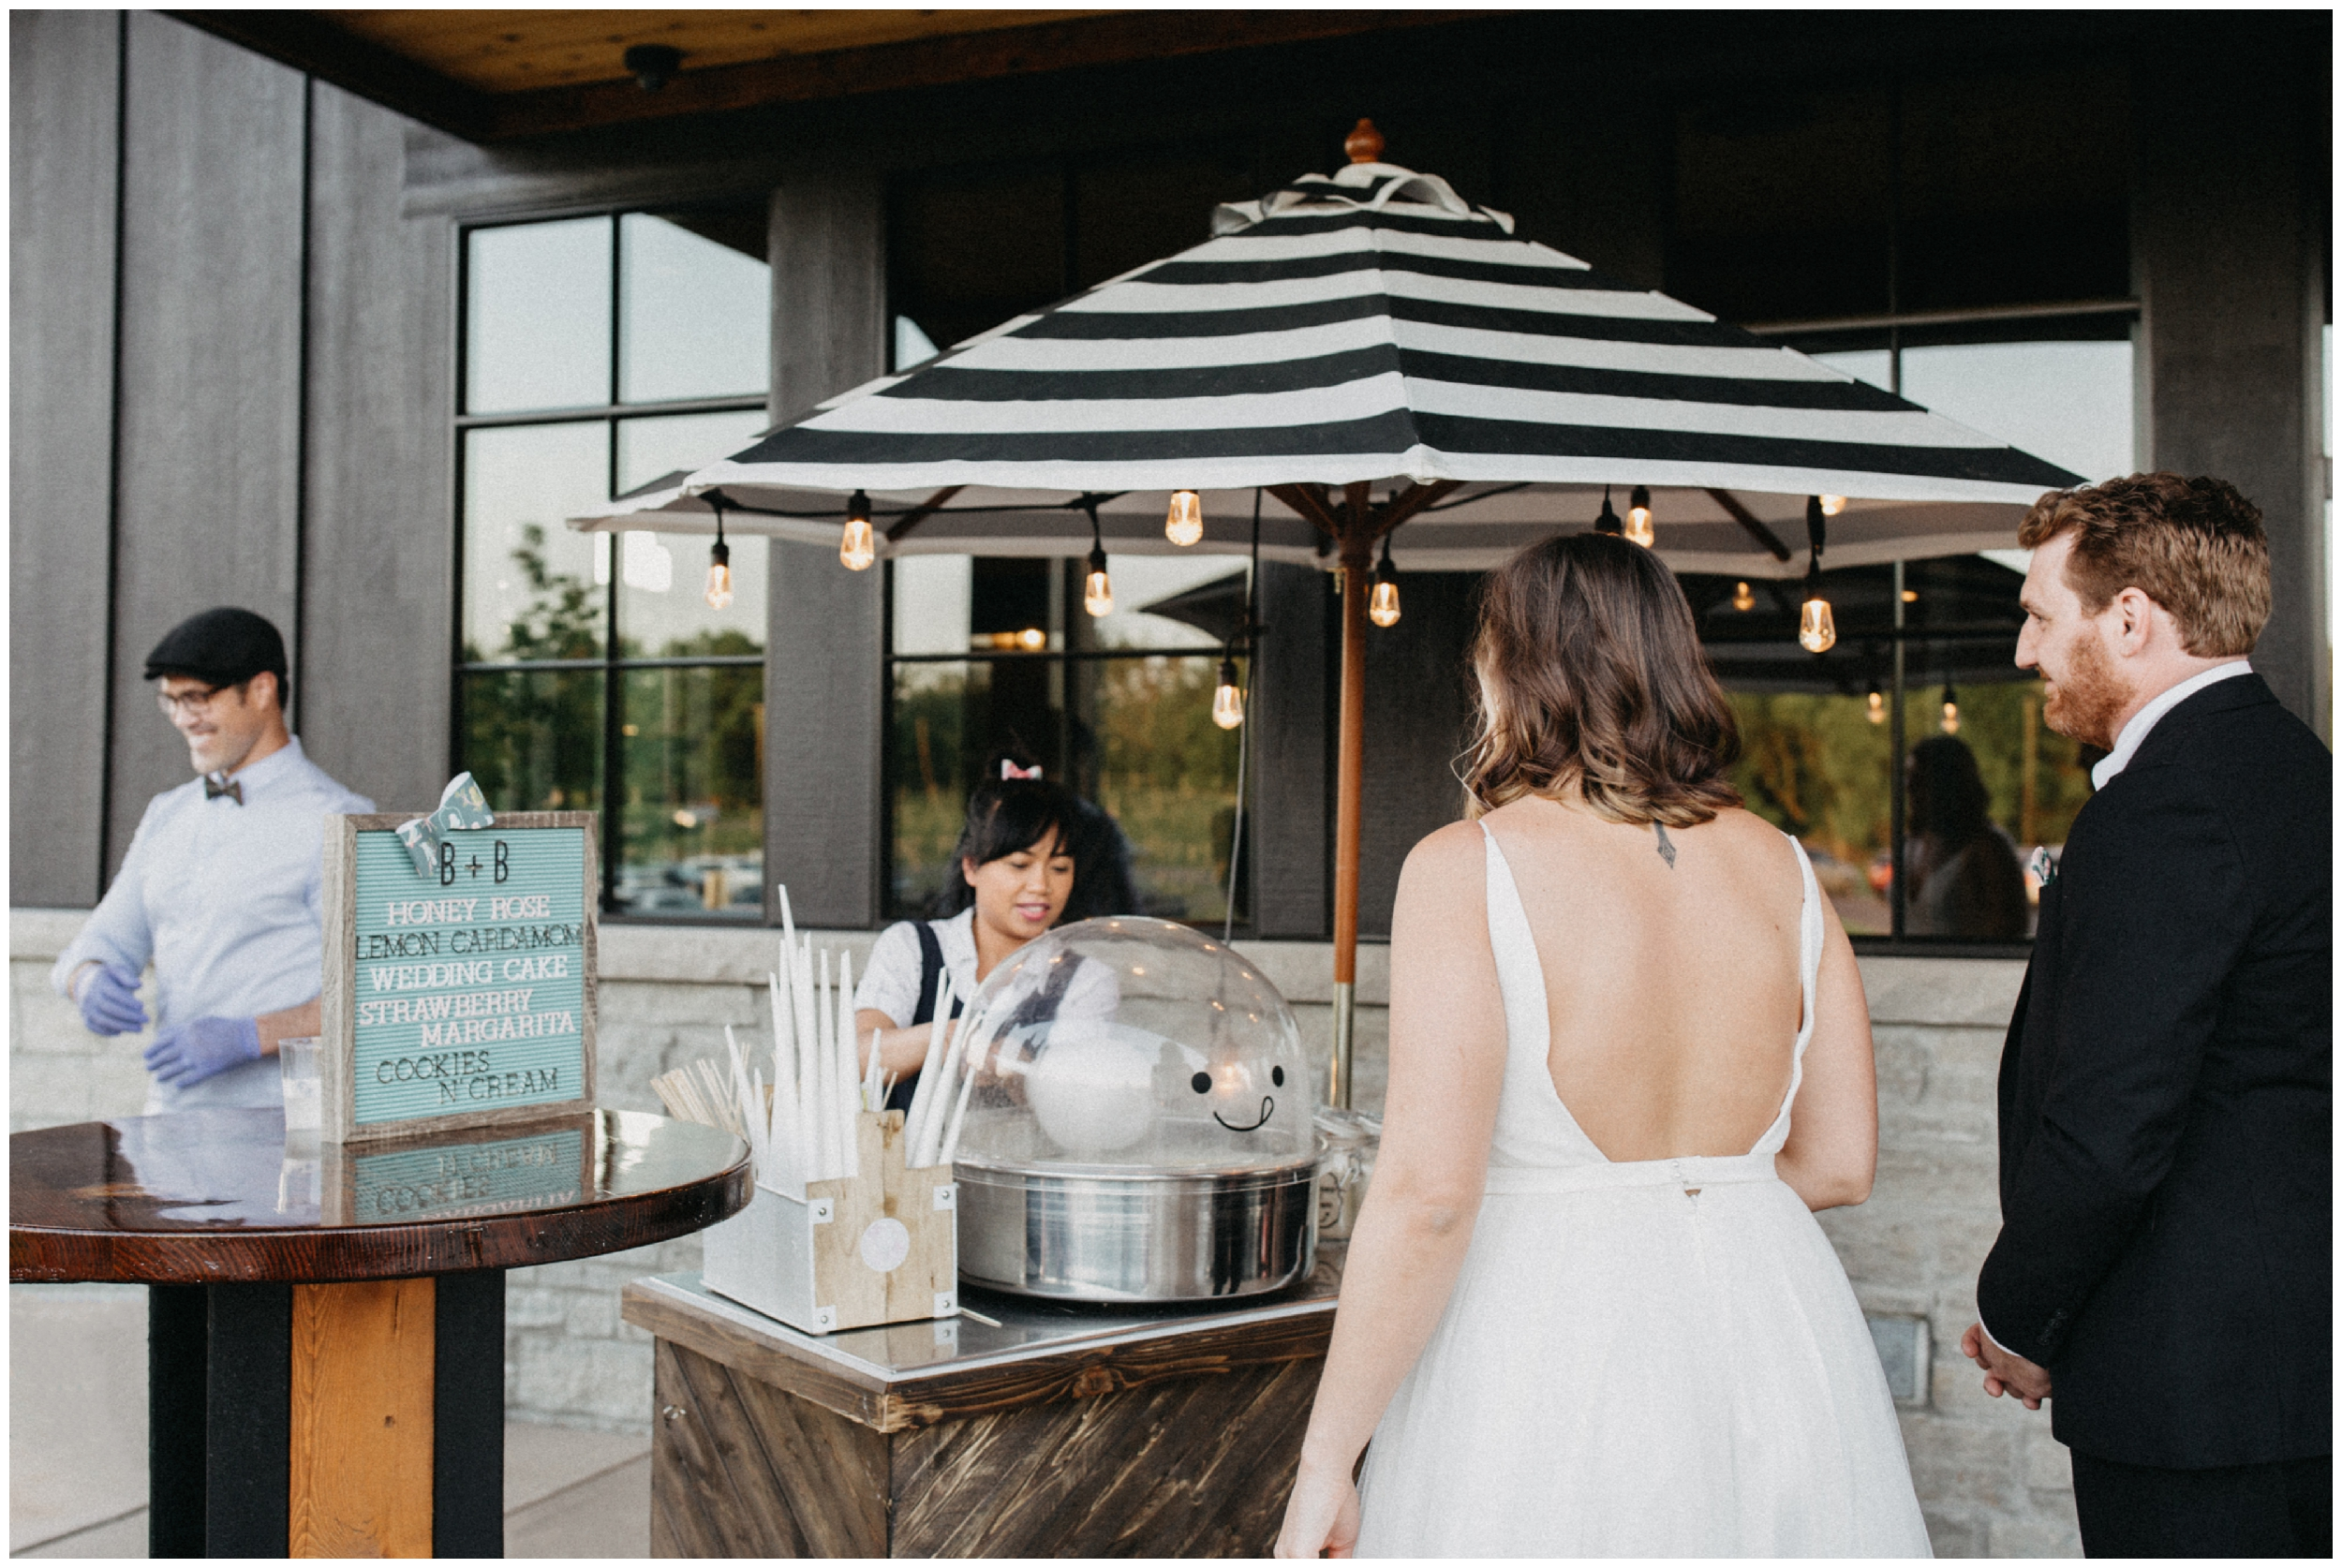 Bride and groom with cotton candy cart at Minnesota winery wedding reception